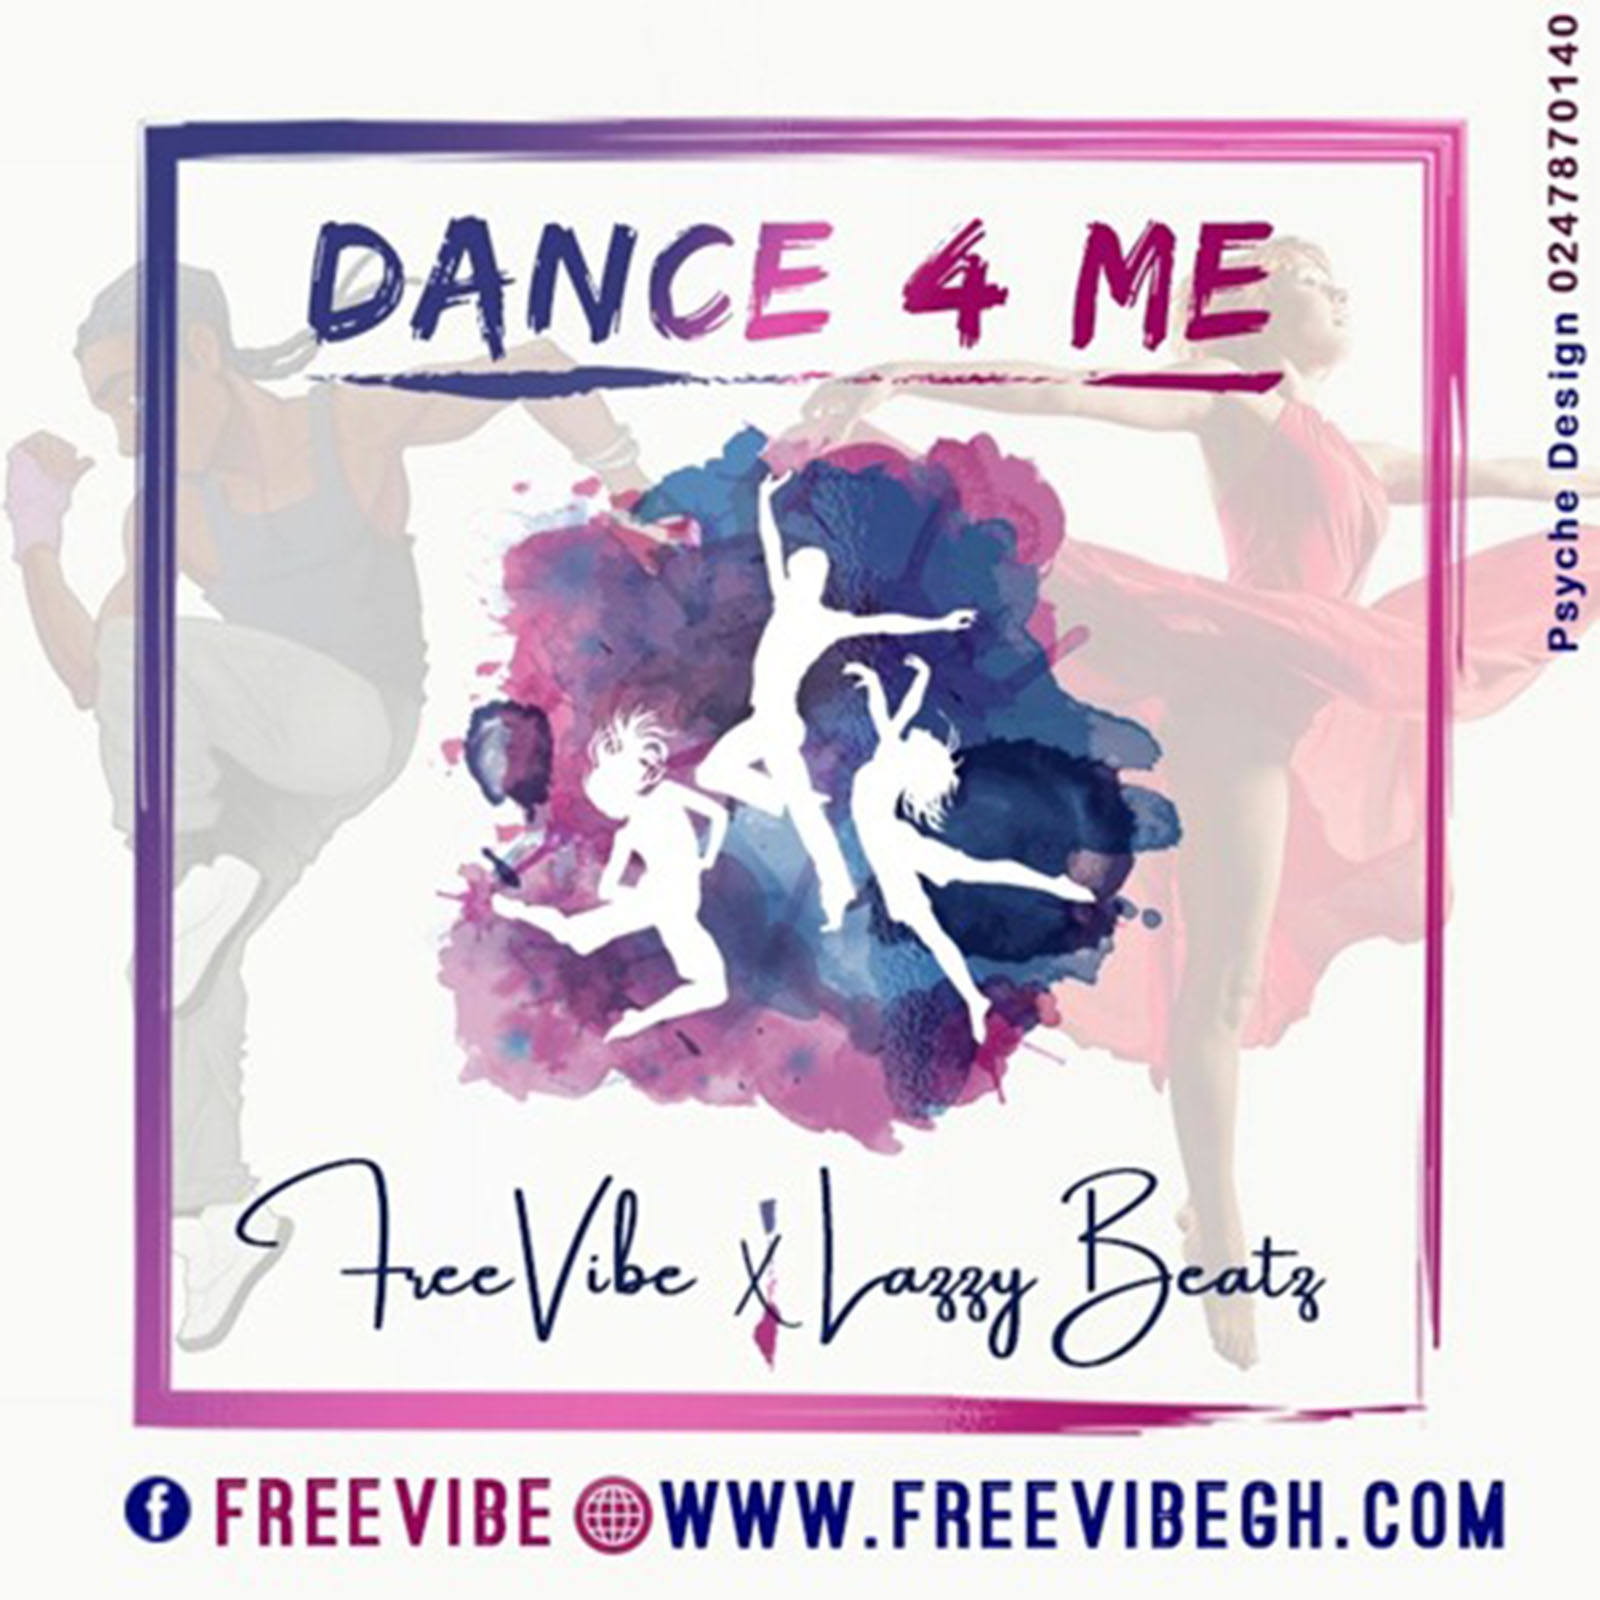 Dance 4 Me by FreeVibe feat. Lazzy Beatz